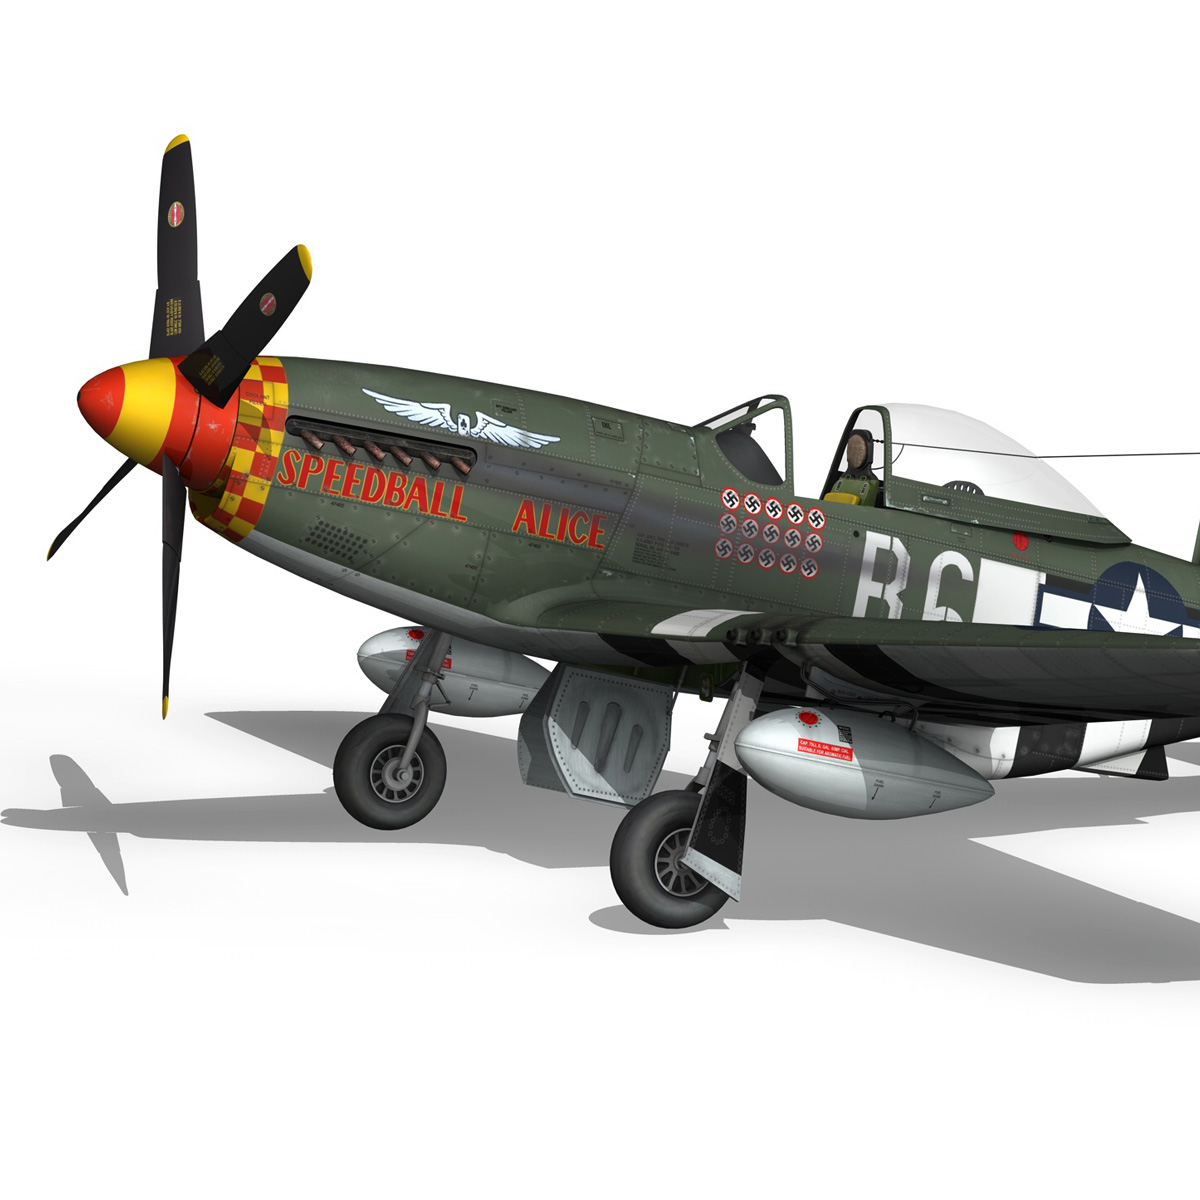 north american p-51d mustang – speedball alice 3d model fbx c4d lwo obj 280310